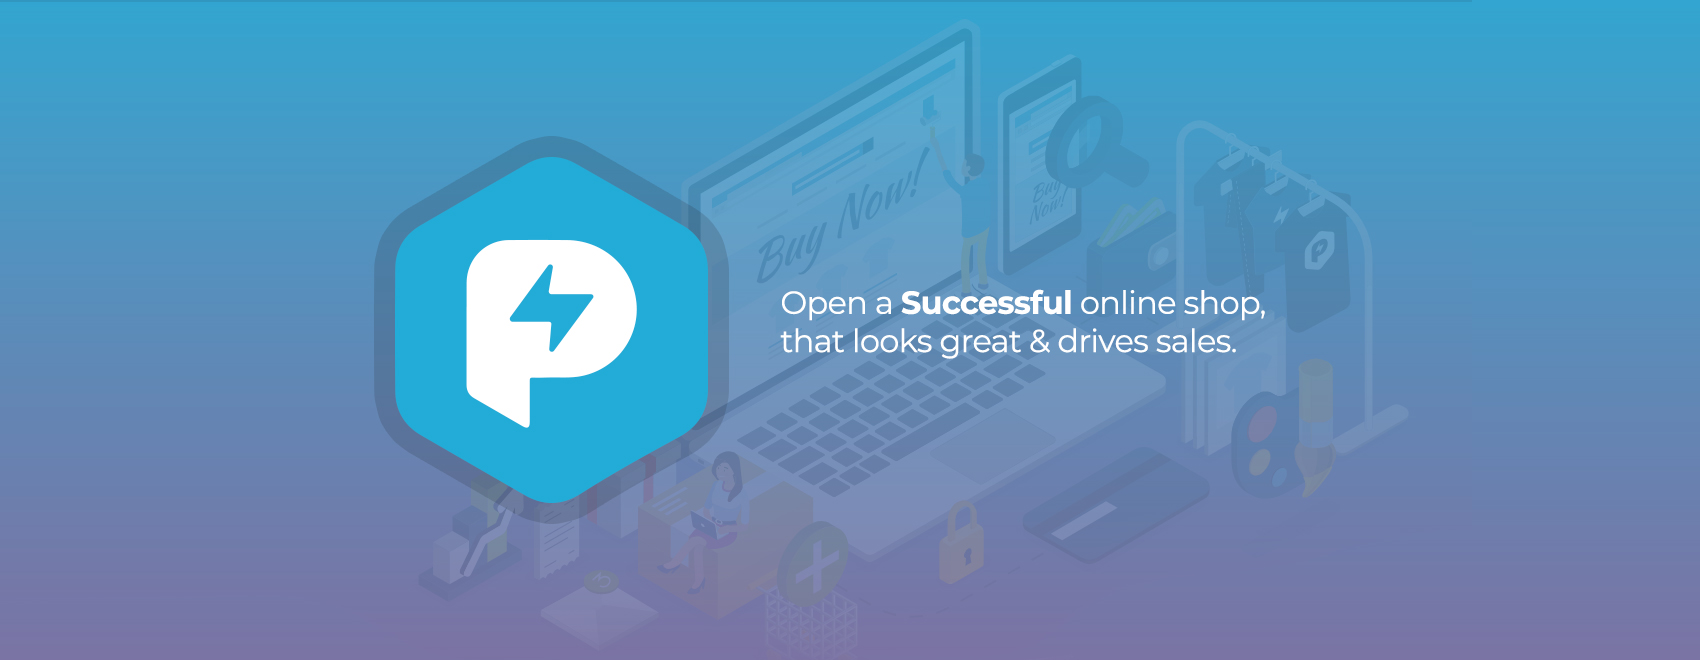 Open a successful online shop that looks great and drives sales.